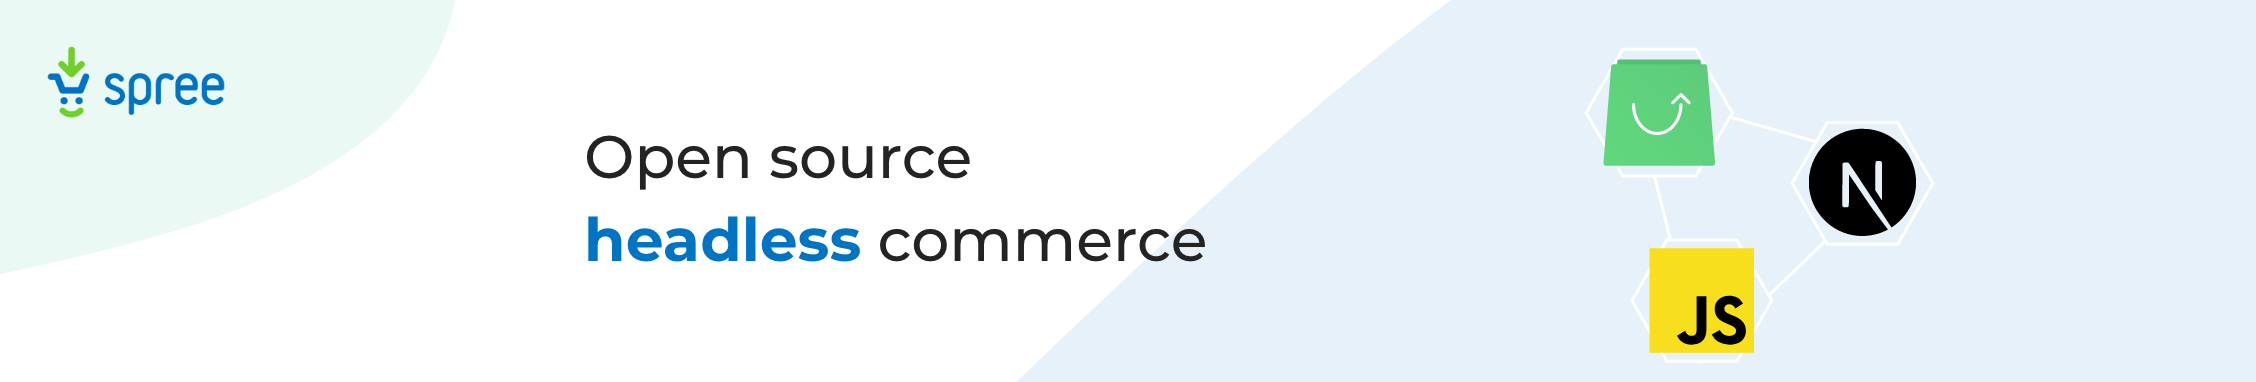 Spree Commerce - a headless open-source ecommerce platform for multi-store, marketplace, or B2B global brands